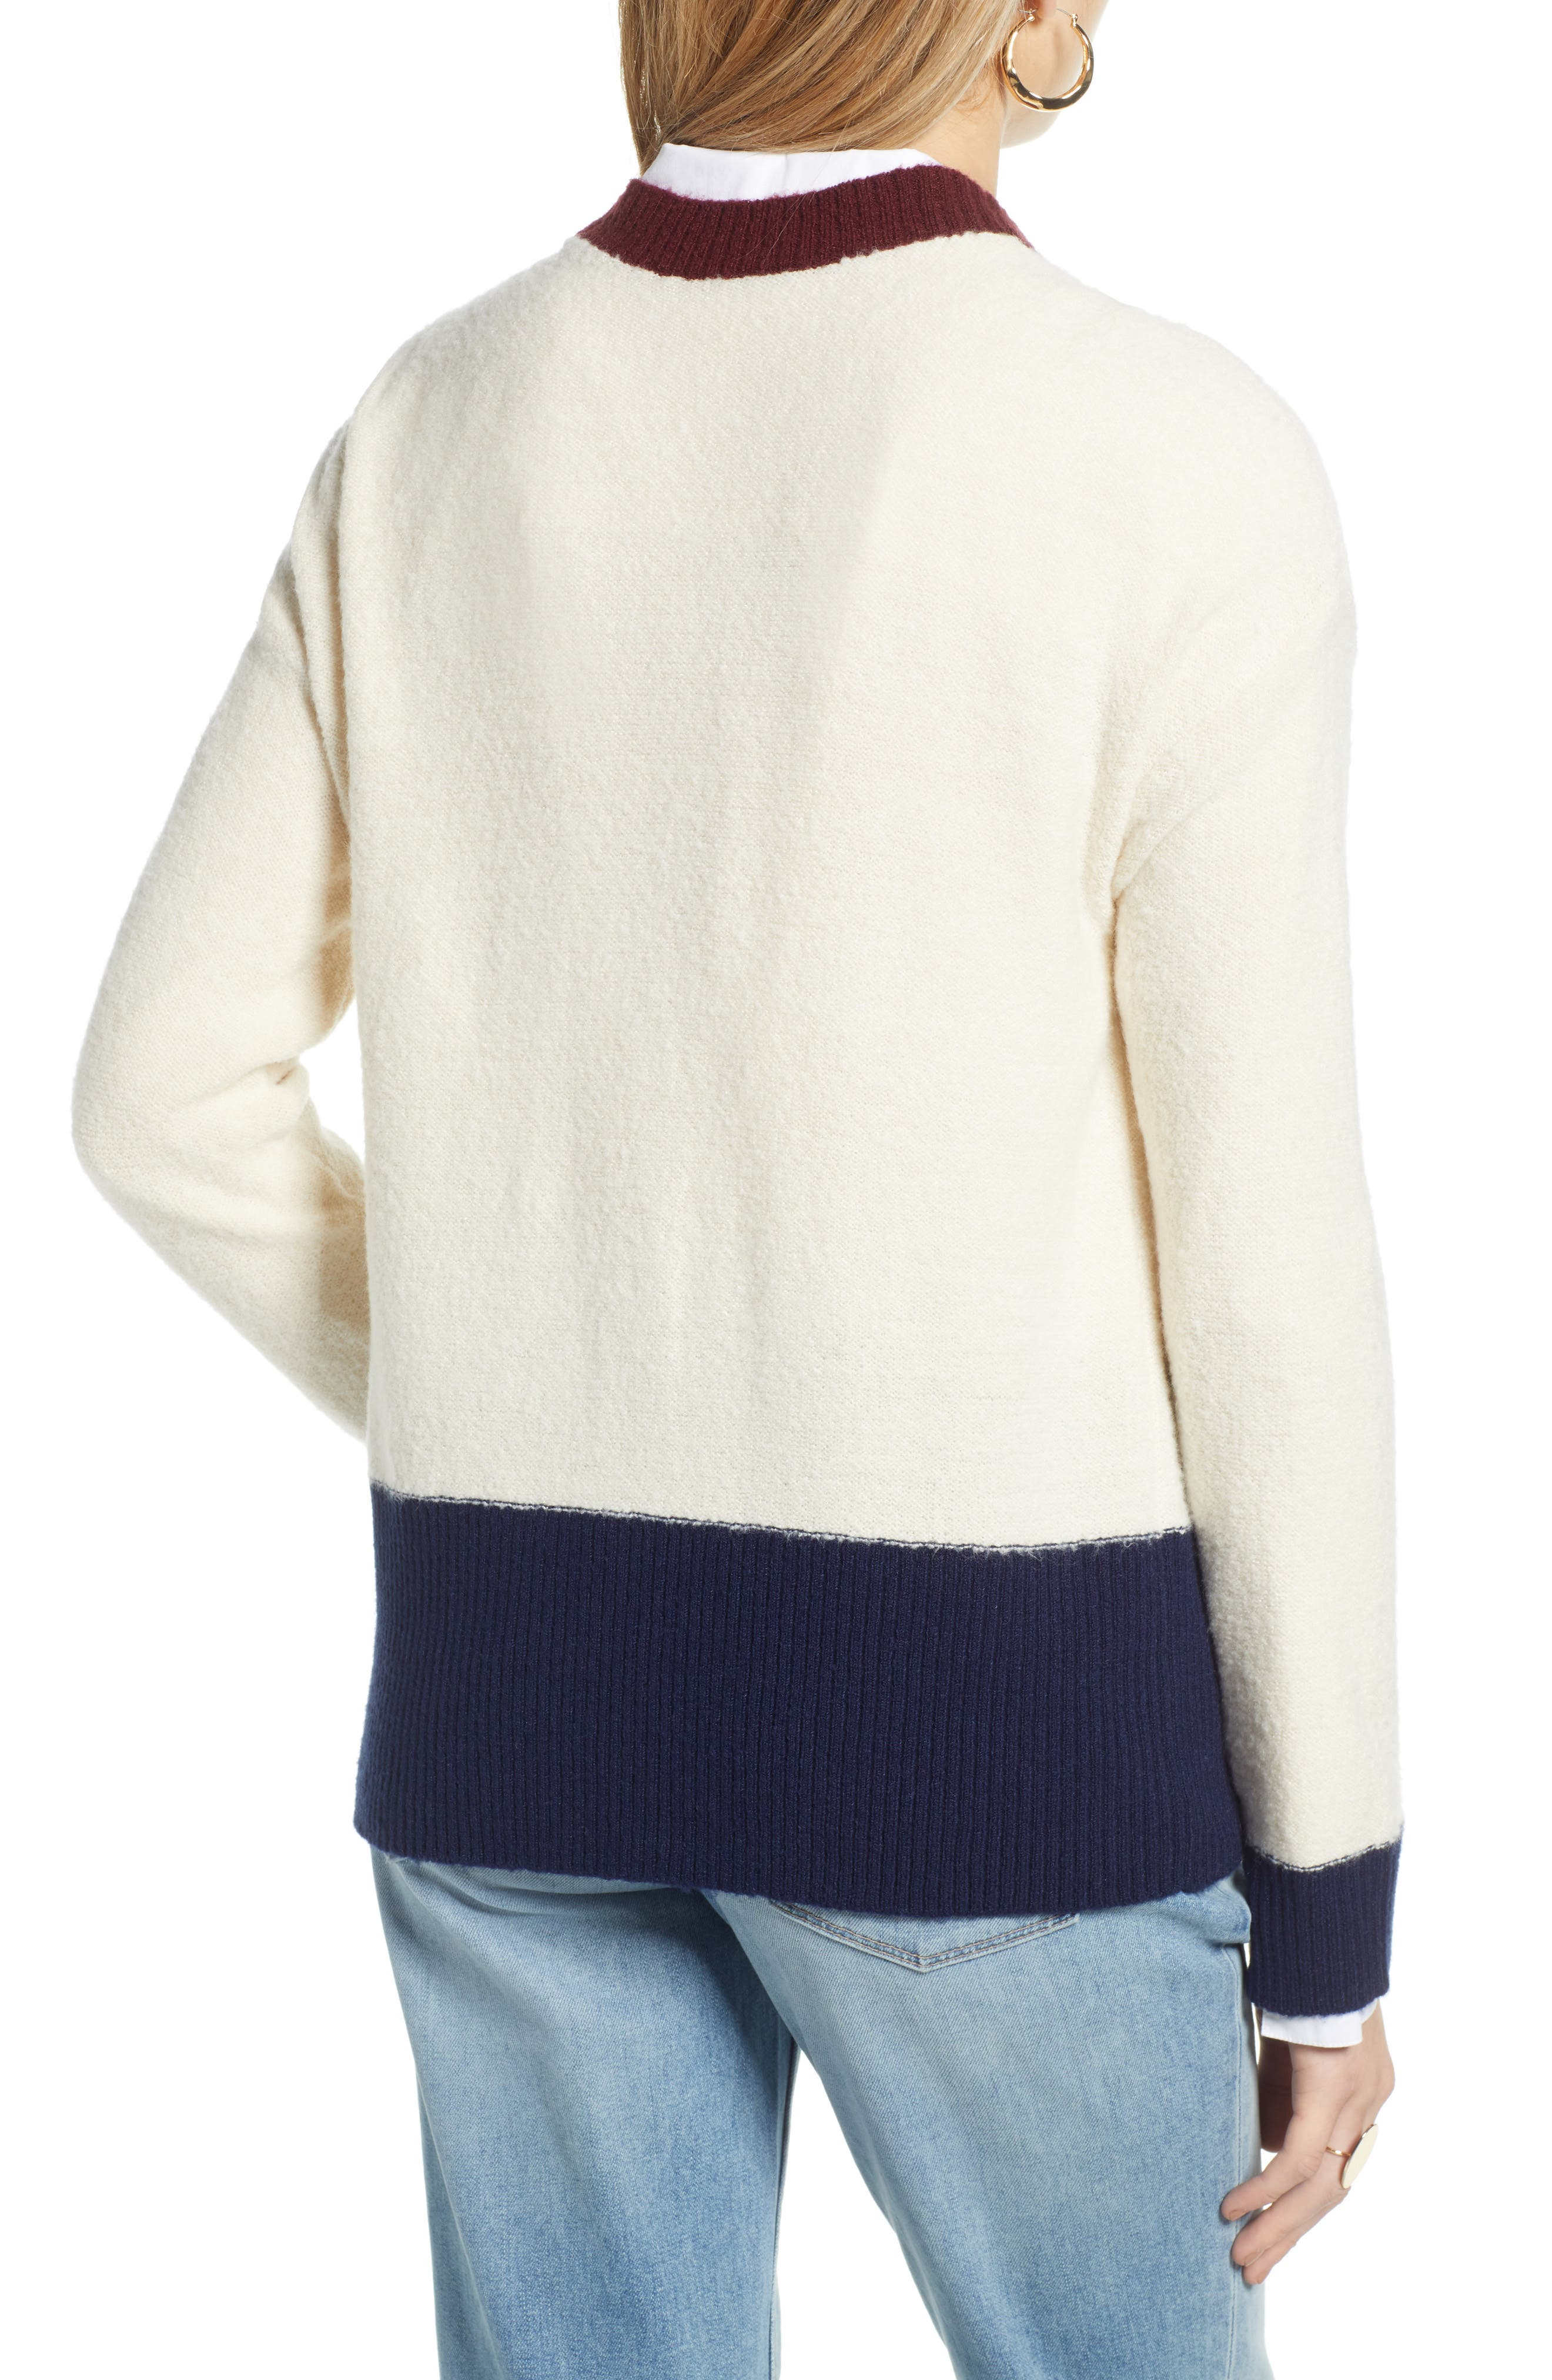 Colorblock V-Neck Cardigan,                             Alternate thumbnail 2, color,                             BEIGE OATMEAL LIGHT HEATHER